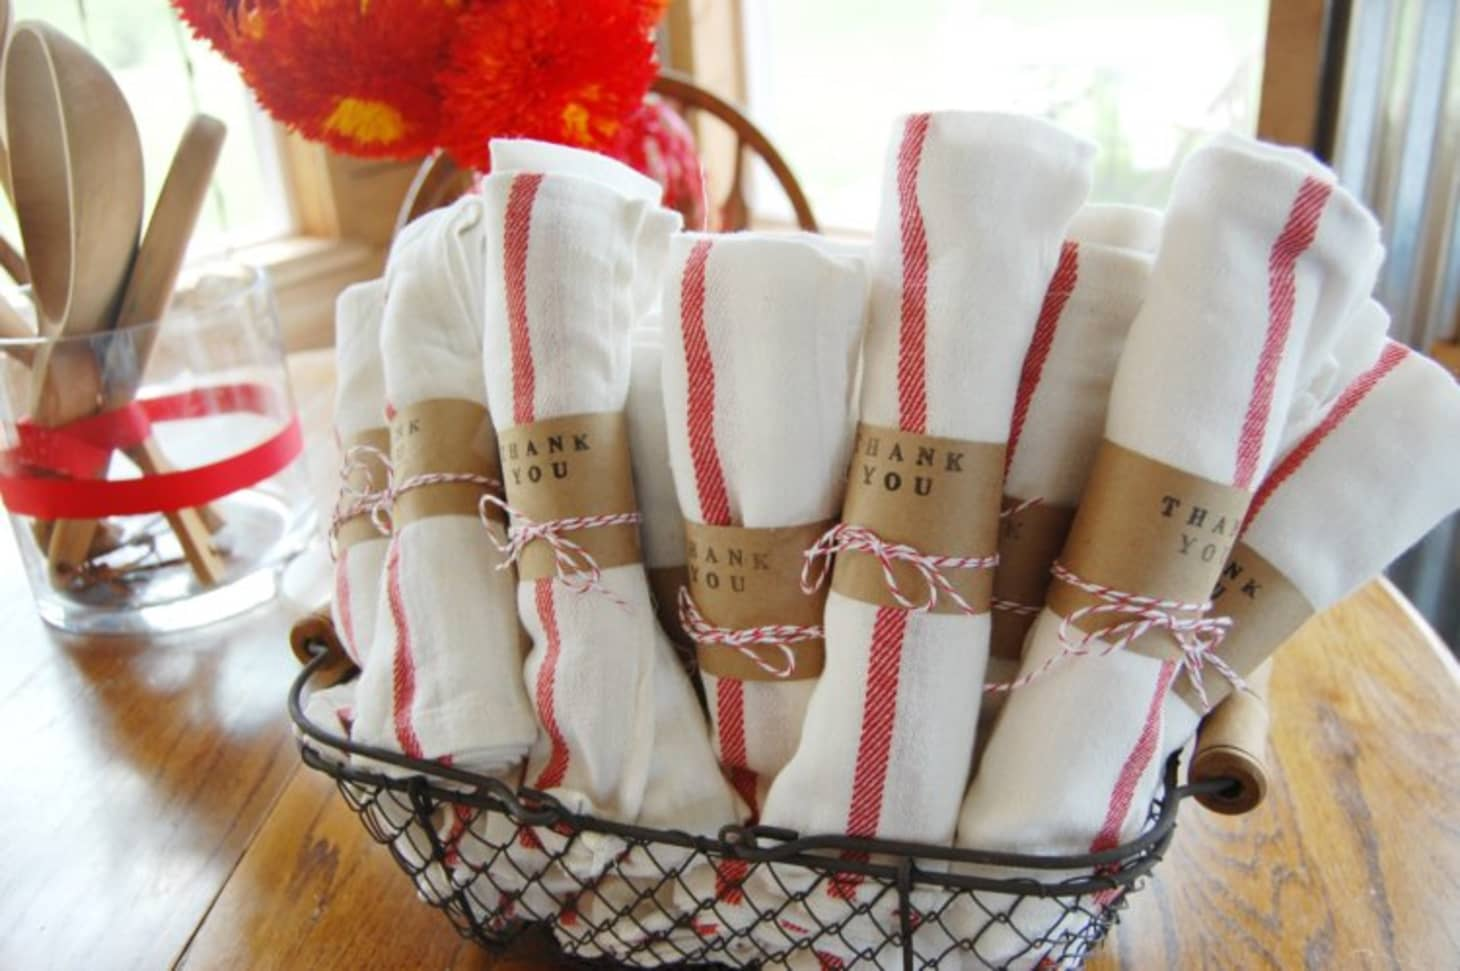 Kitchen Wedding Gifts: What's A Stock-the-Kitchen Bridal Shower?